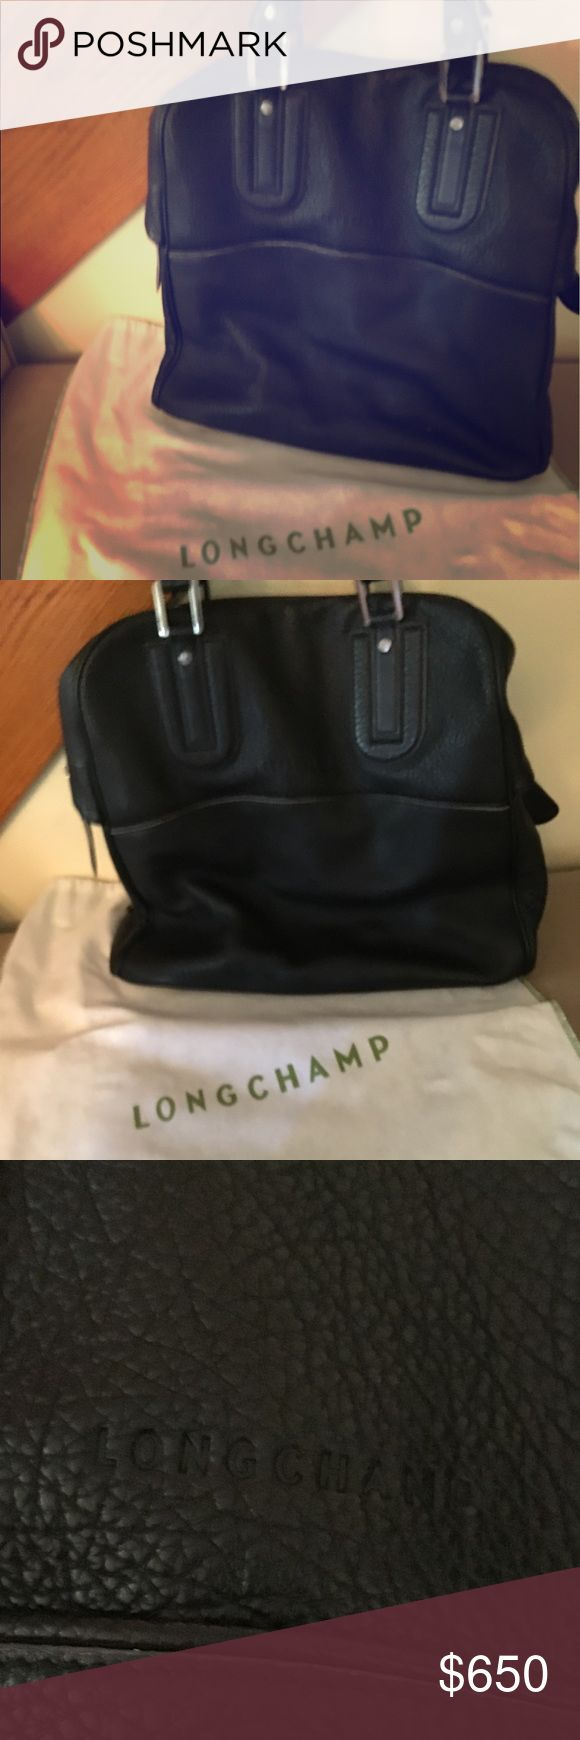 Super roomy Longchamp leather Cosmos bag I adore this bag and use it as a carry on. Despite using it 5 or 6 times it's still in excellent condition - no leather scratches or stains to inside. I'm not entirely sure I want to sell it, but will consider for the right price. Longchamp Bags